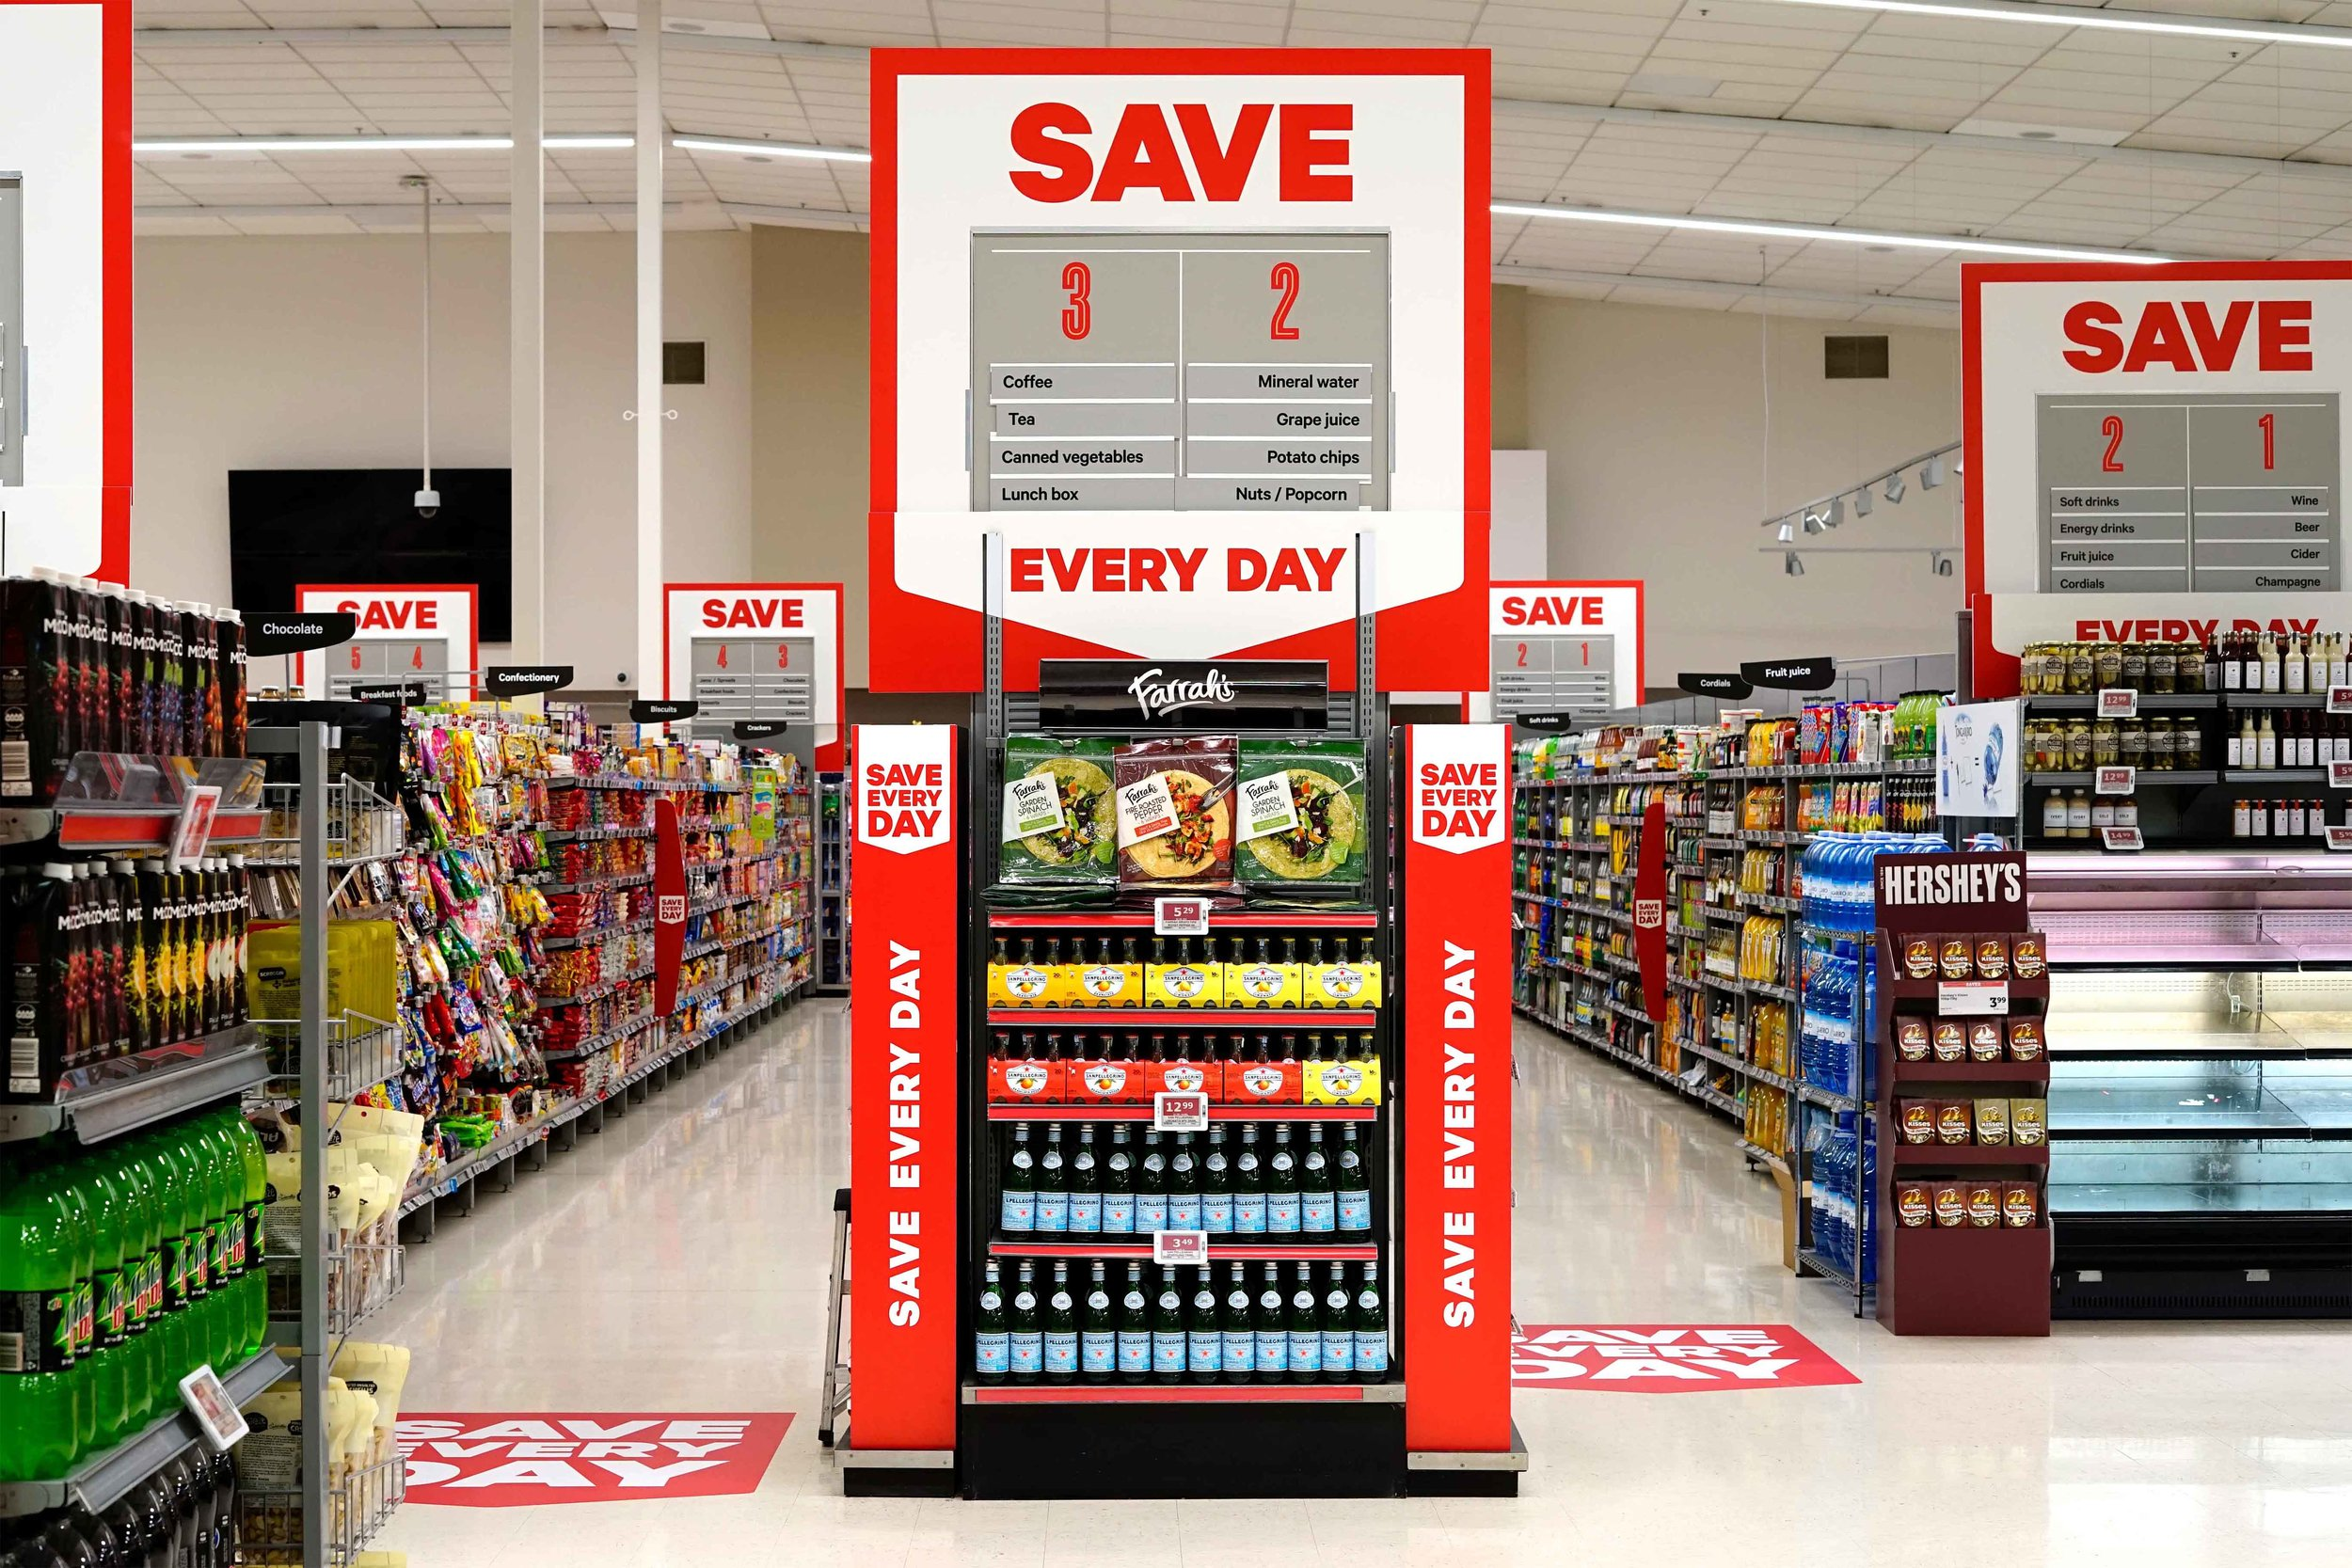 POS Management - We don't just represent the interests of supplier or third party brands in your stores, we can help you deliver captivating POS displays to help reinforce your brand principles or promote seasonal activations.— New World Save Every Day